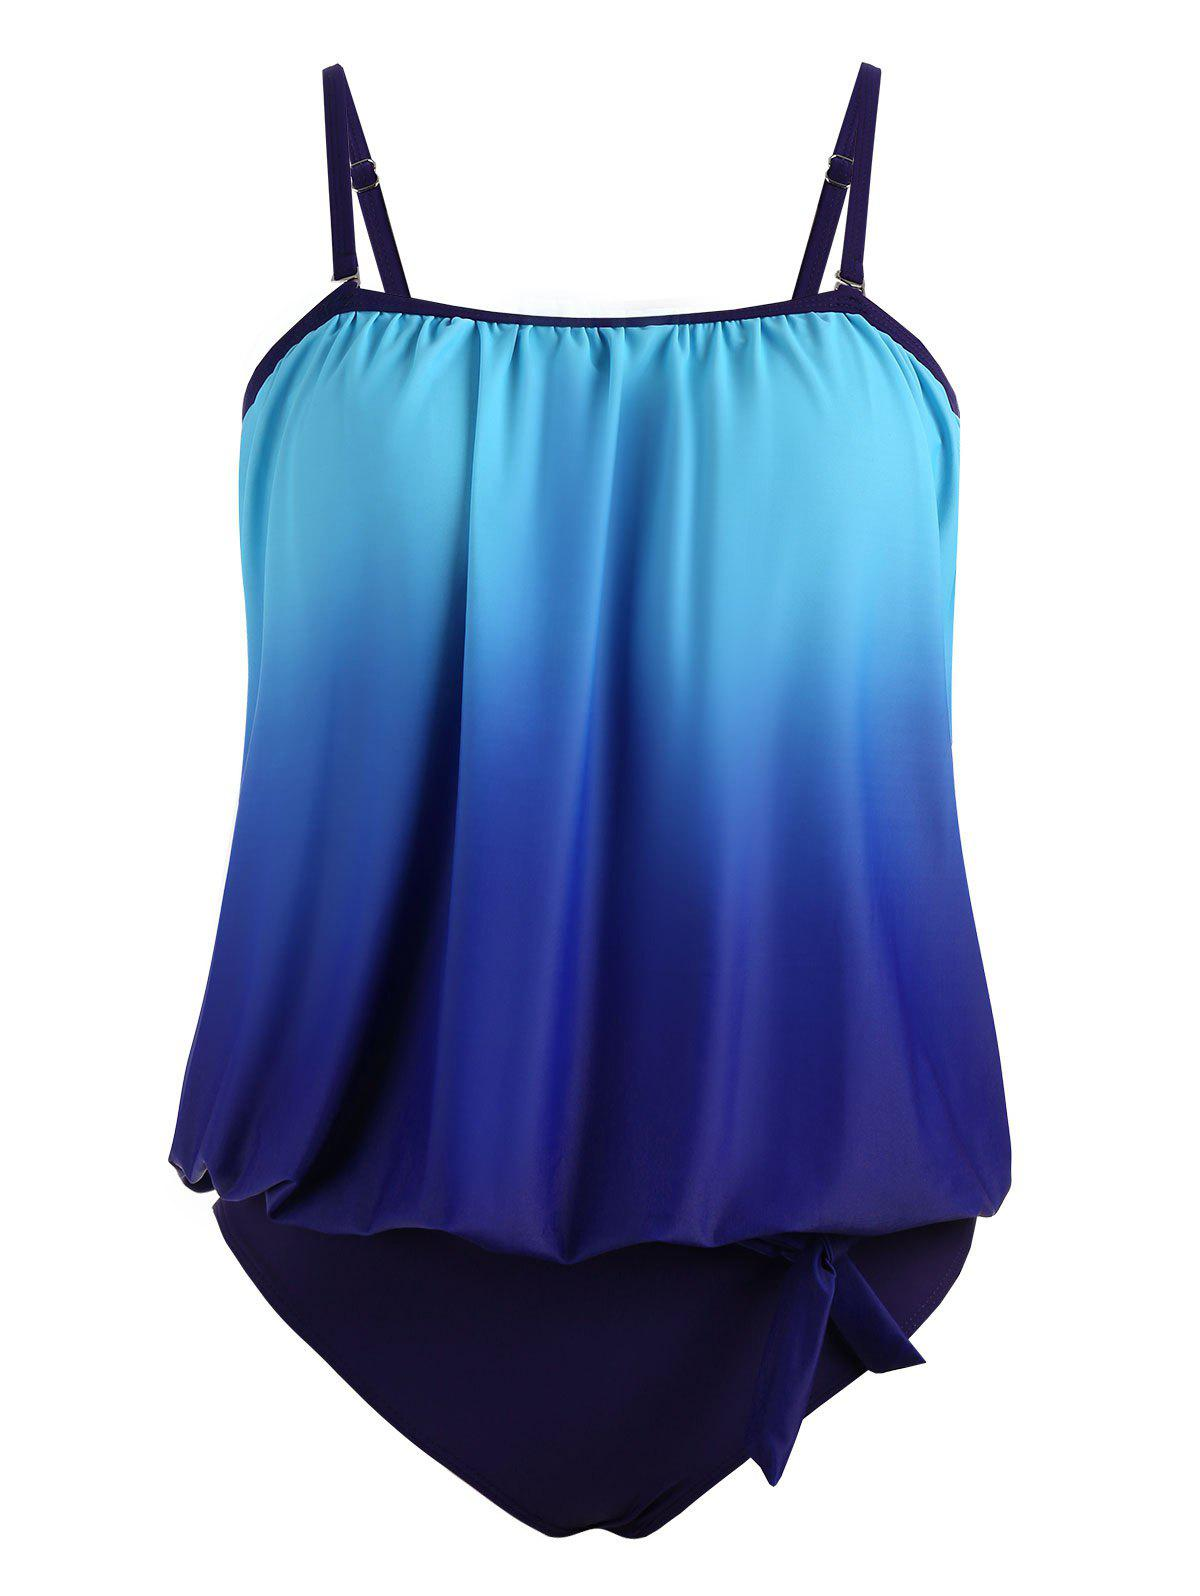 Padded Plus Size Ombre Blouson TankiniWOMEN<br><br>Size: 3XL; Color: BLUE; Gender: For Women; Swimwear Type: Tankini; Material: Polyester,Spandex; Bra Style: Padded; Support Type: Wire Free; Pattern Type: Ombre; Waist: Natural; Elasticity: Elastic; Weight: 0.3600kg; Package Contents: 1 x Tank Top  1 x Panty;